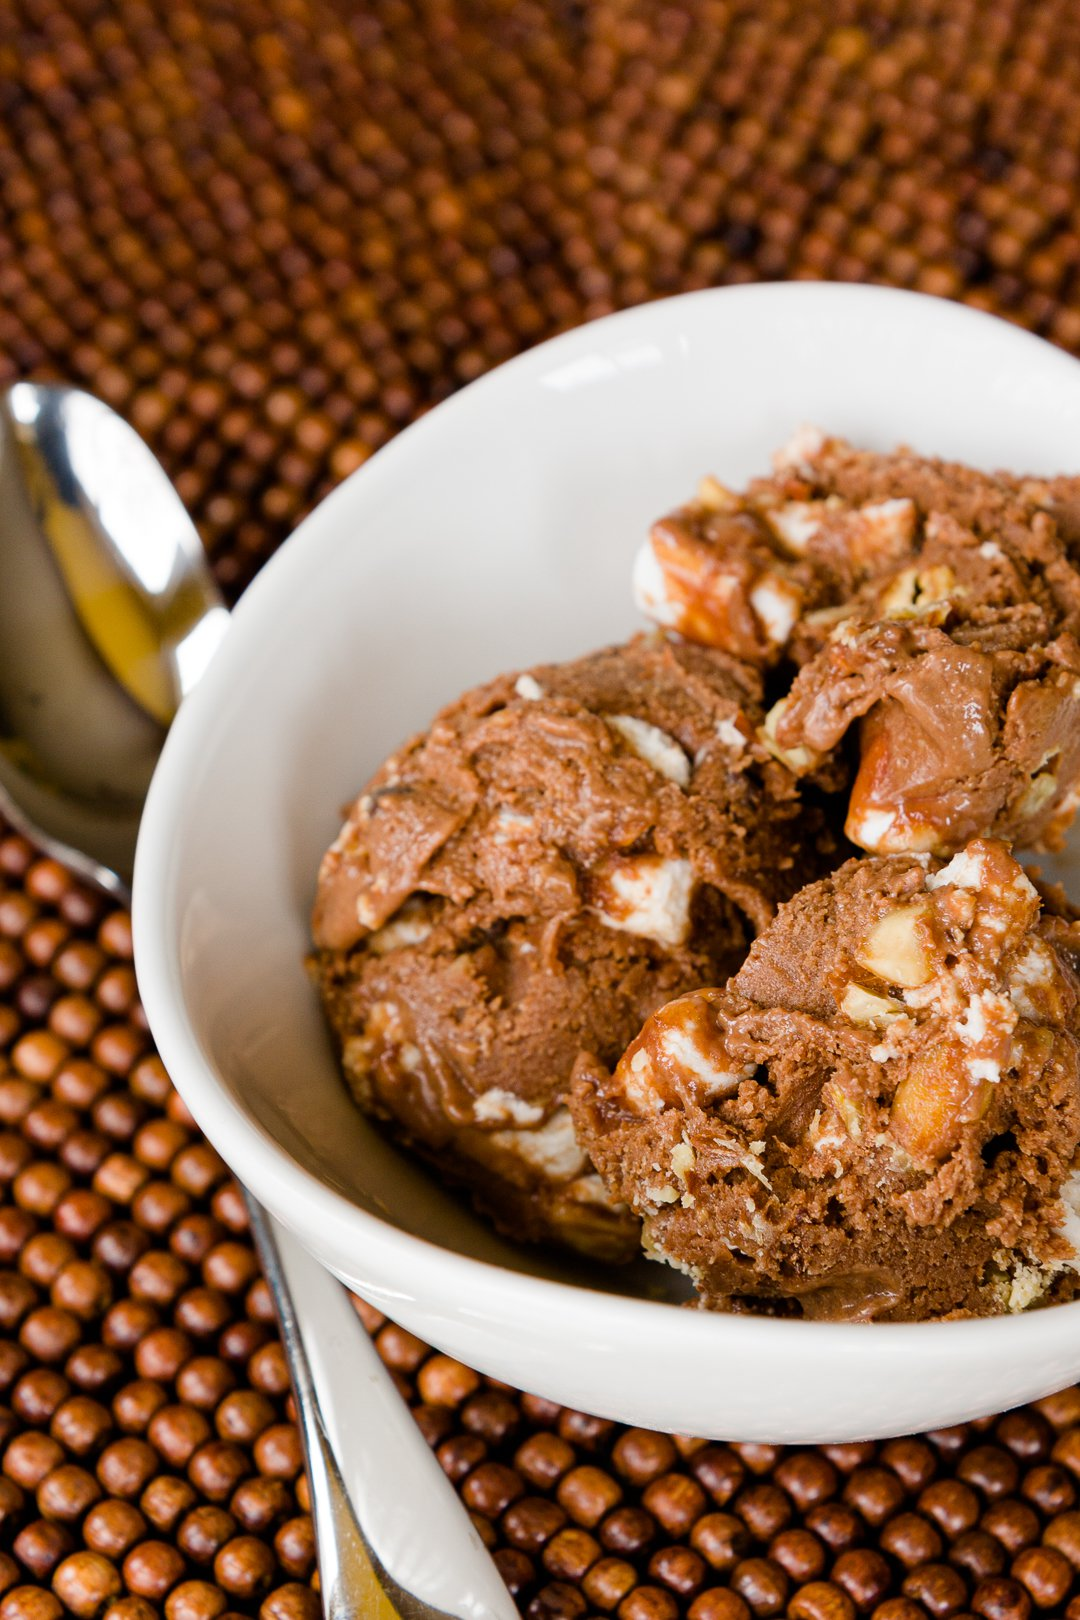 Rocky Road Ice Cream